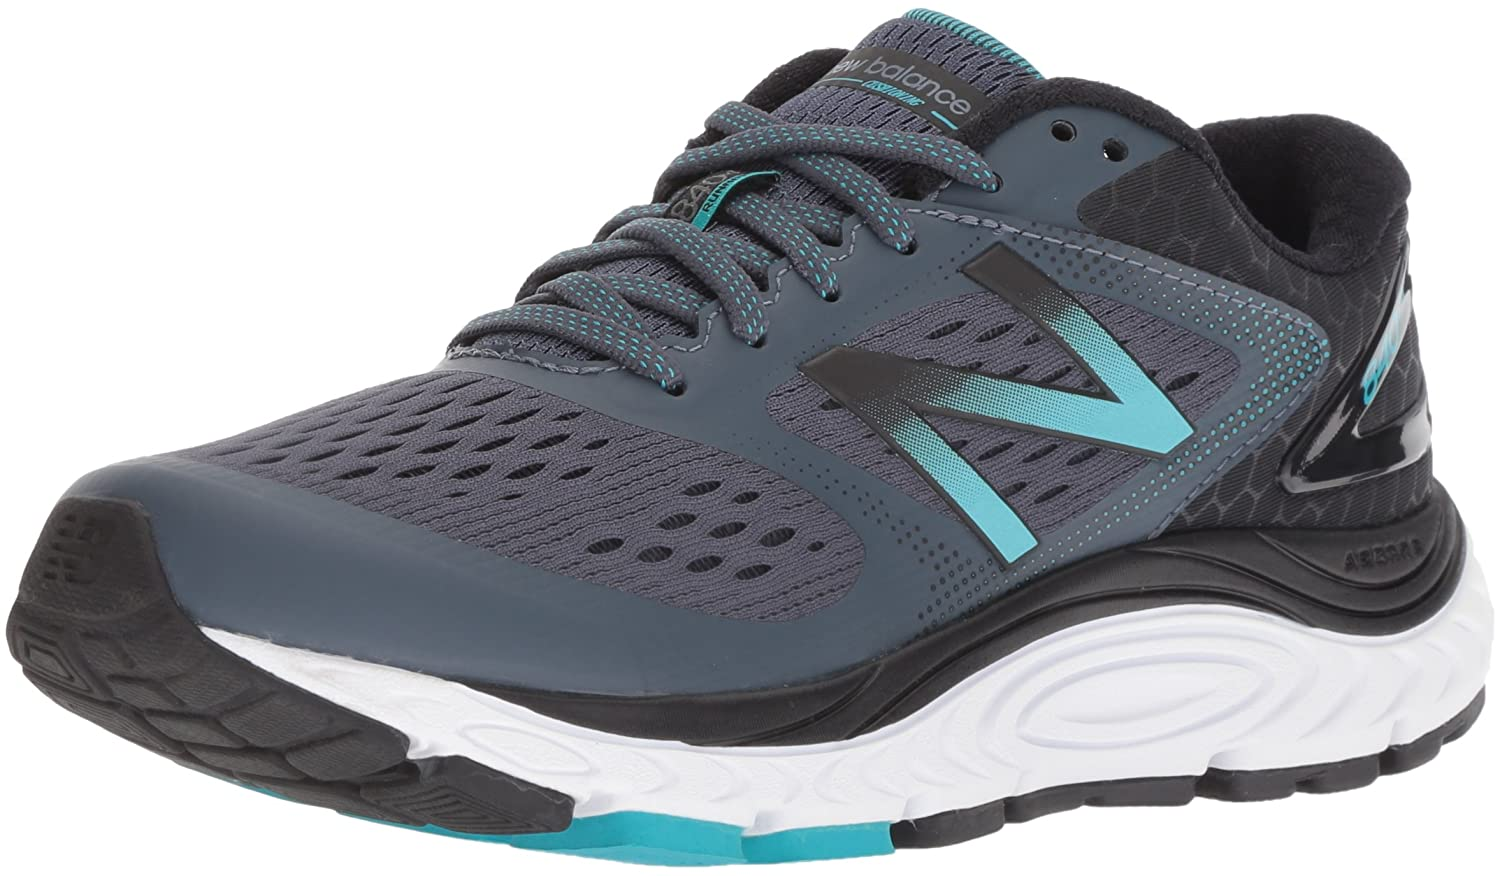 New Balance Women's 840v4 Running Shoe B01N9FXGA7 13 2E US|Dark Grey